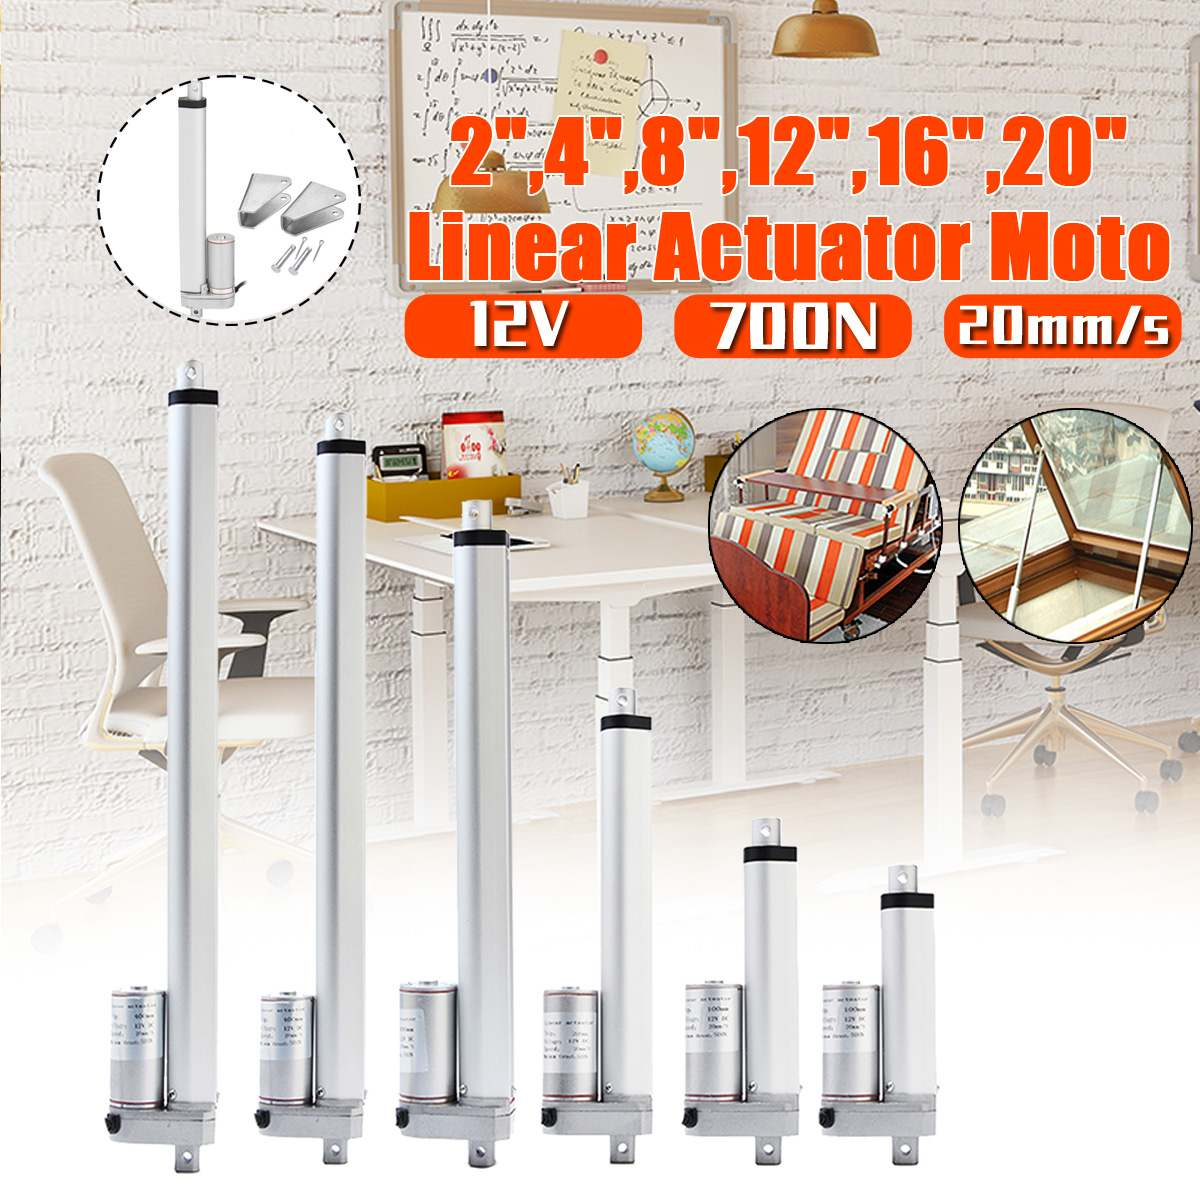 Electric Motor Aluminum Alloy DC 12V Linear Actuator 50 100 200 300 400 500mm 200N Window Opener  20mm/sElectric Motor Aluminum Alloy DC 12V Linear Actuator 50 100 200 300 400 500mm 200N Window Opener  20mm/s